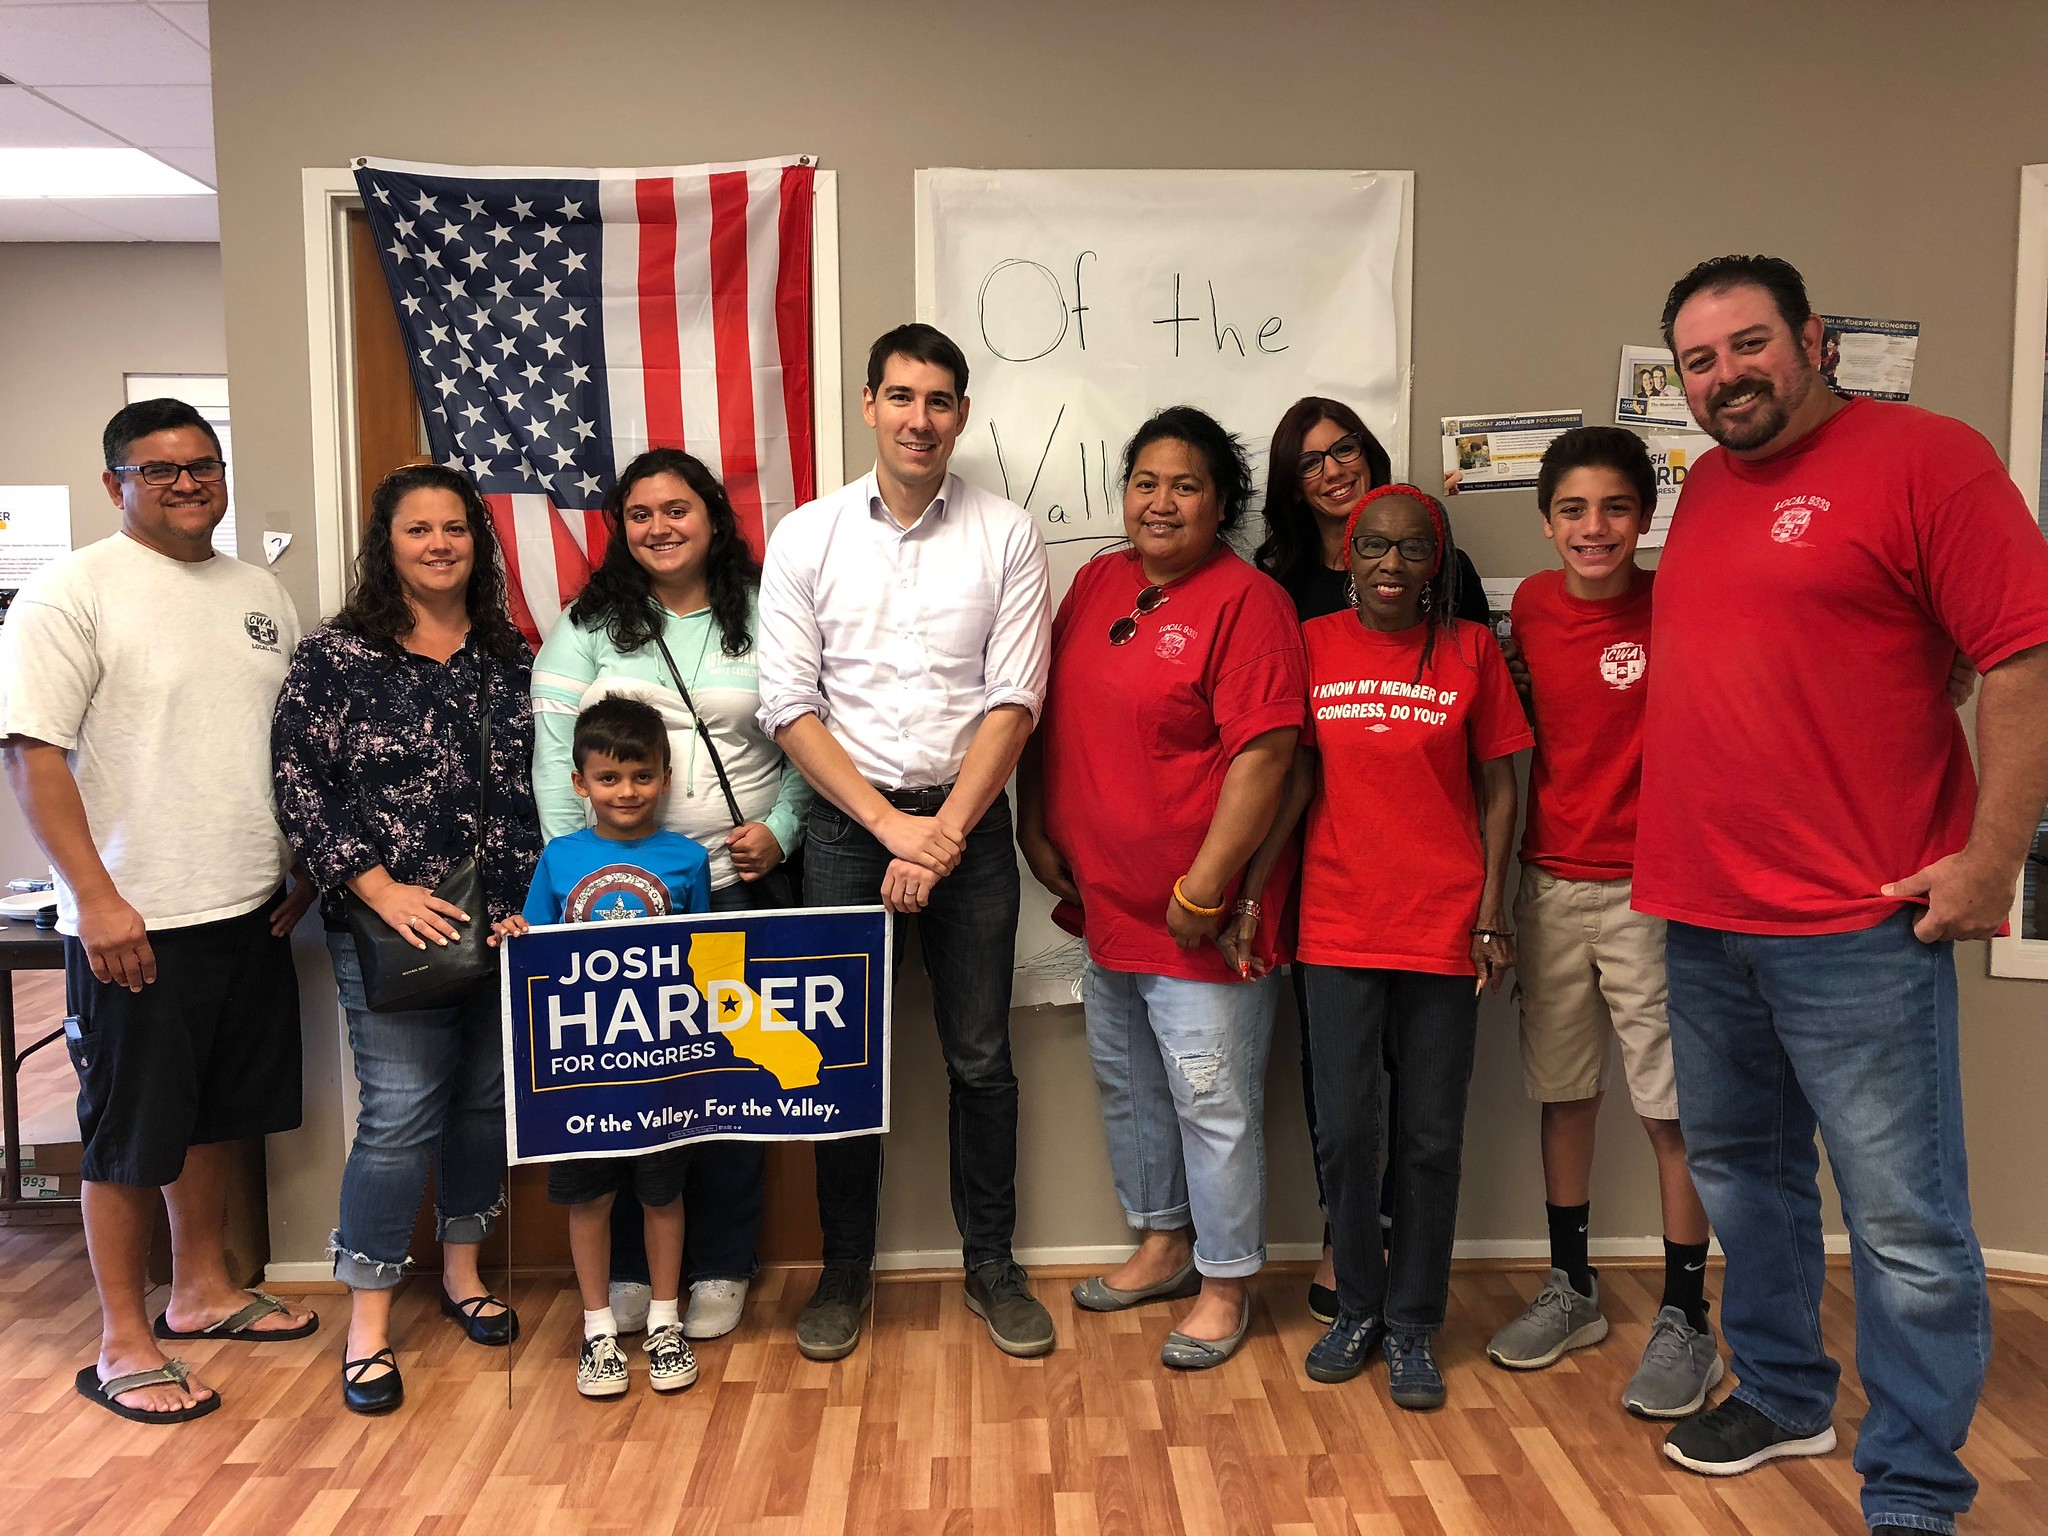 Local 9333 met with Candidate for Congress Josh Harder